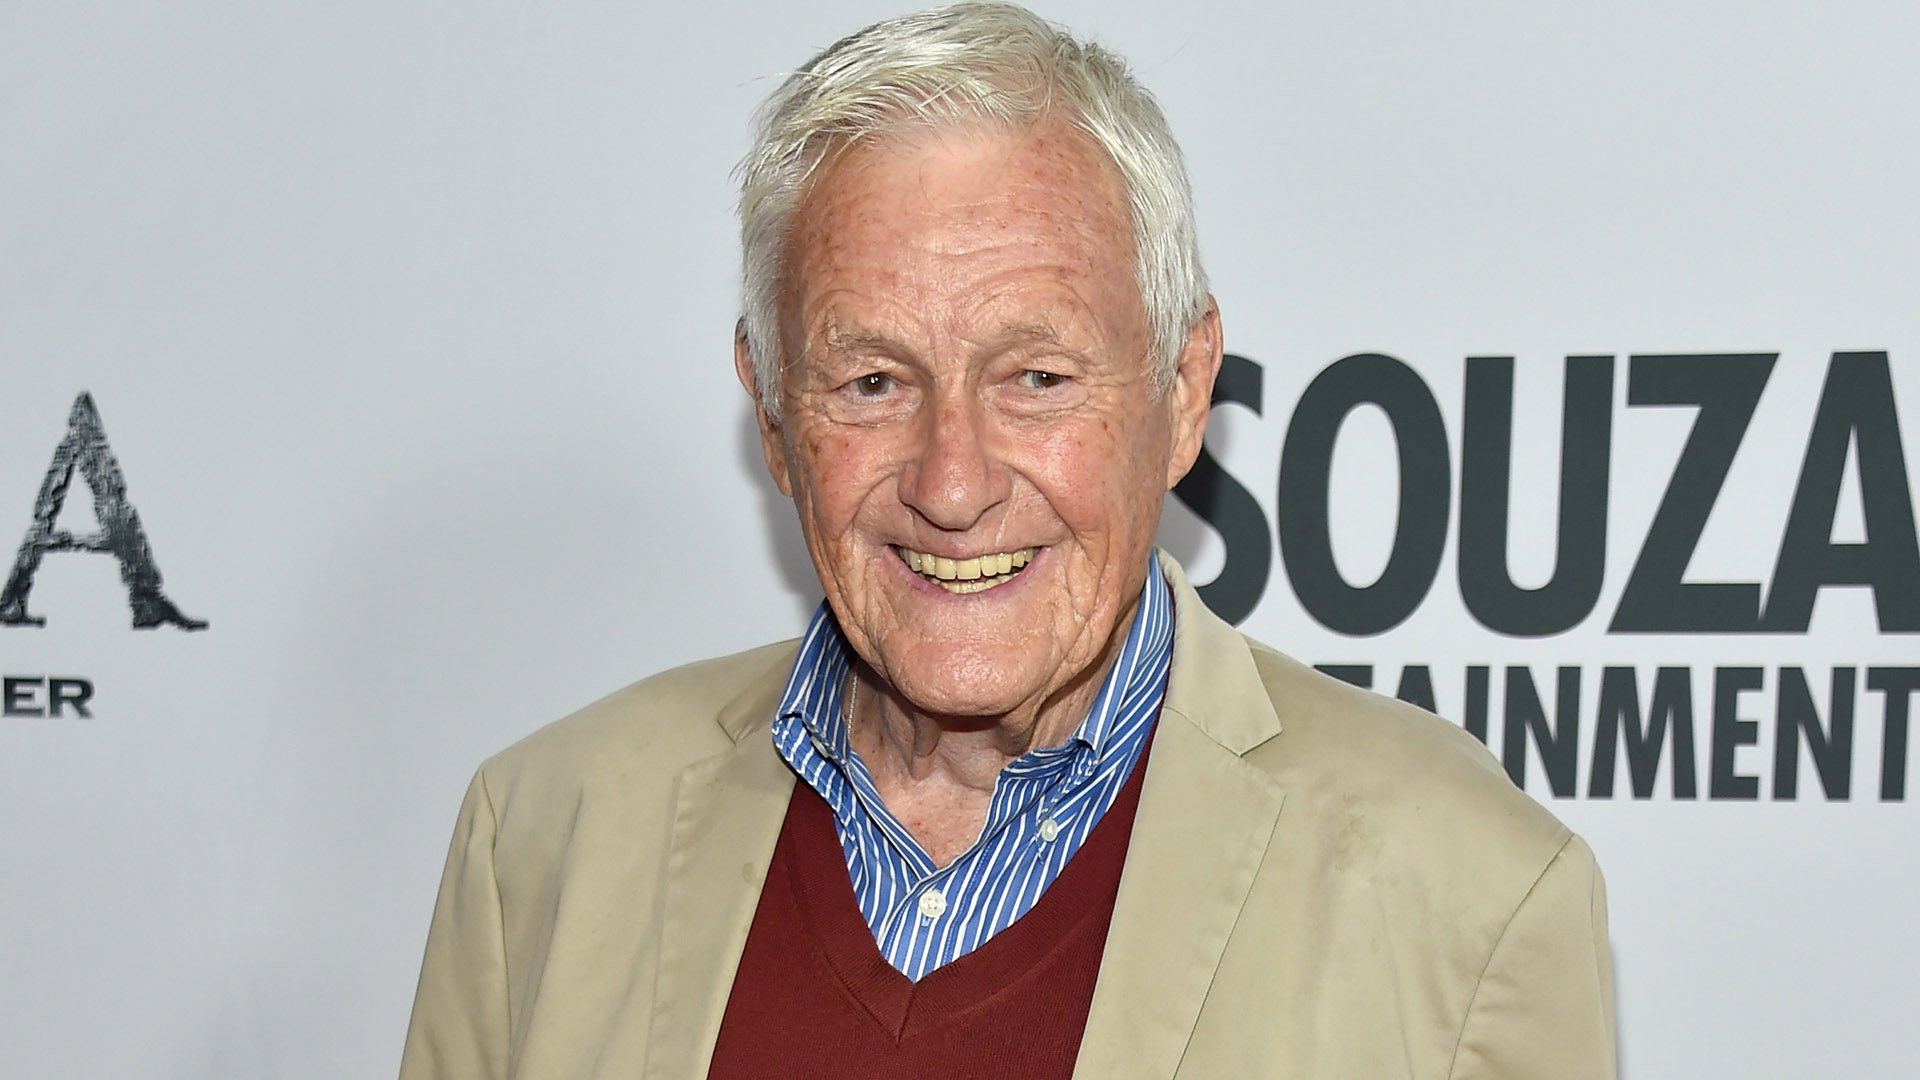 """Actor Orson Bean attends the premiere of Lionsgate Films' """"America"""" at Regal Cinemas L.A. Live on June 30, 2014, in Los Angeles, California. (Credit: Alberto E. Rodriguez/Getty Images)"""